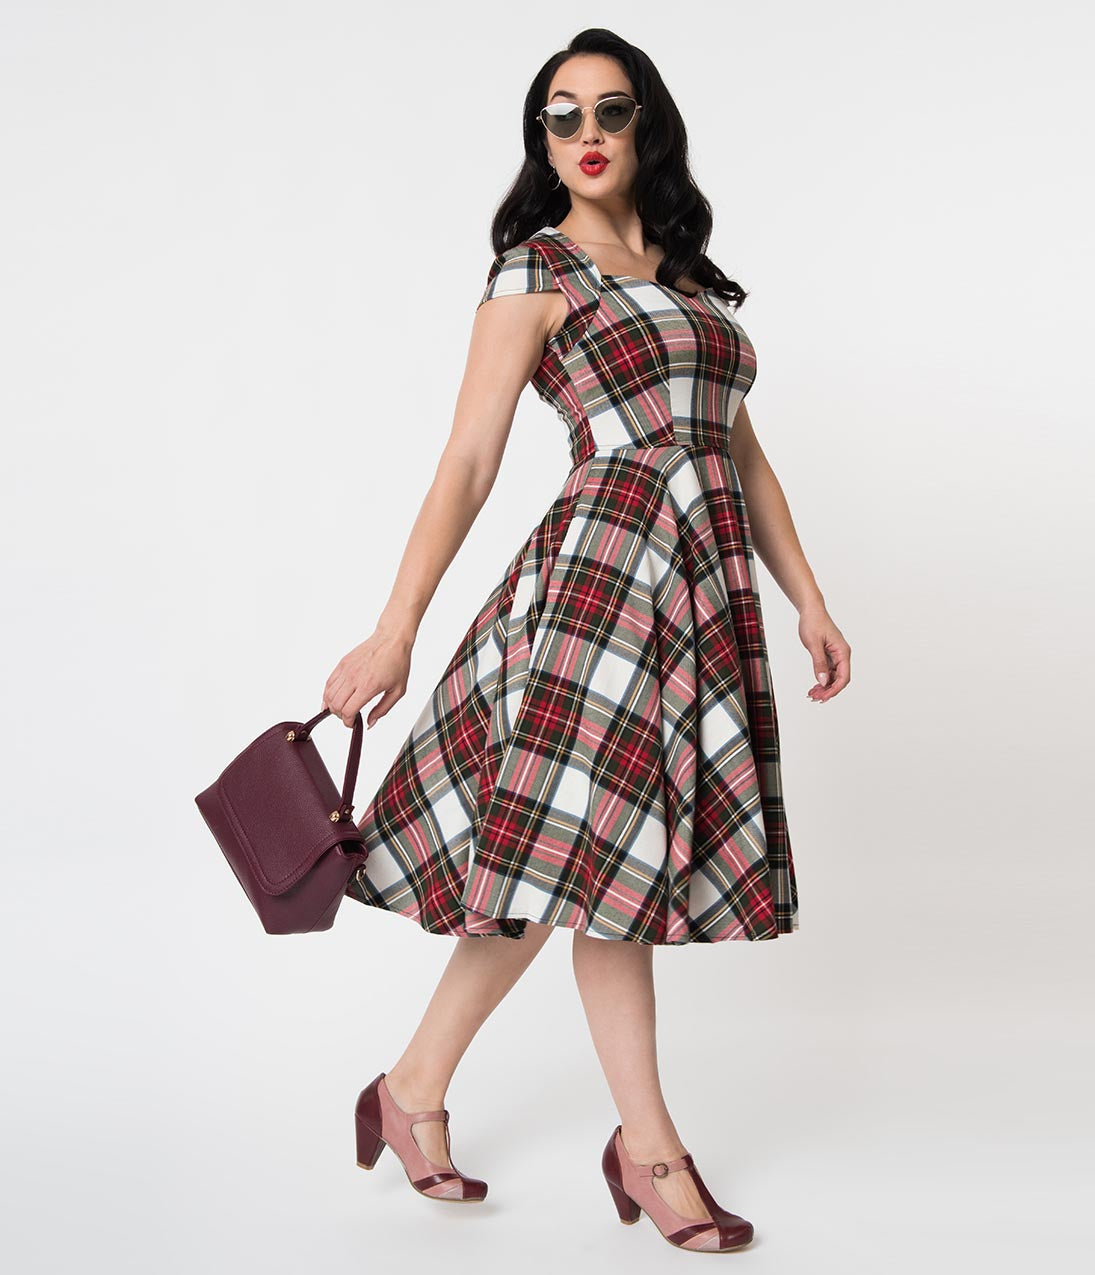 1950s Swing Dresses | 50s Swing Dress Hell Bunny 1950S Style Red  Green Tartan Woven Aberdeen Swing Dress $92.00 AT vintagedancer.com